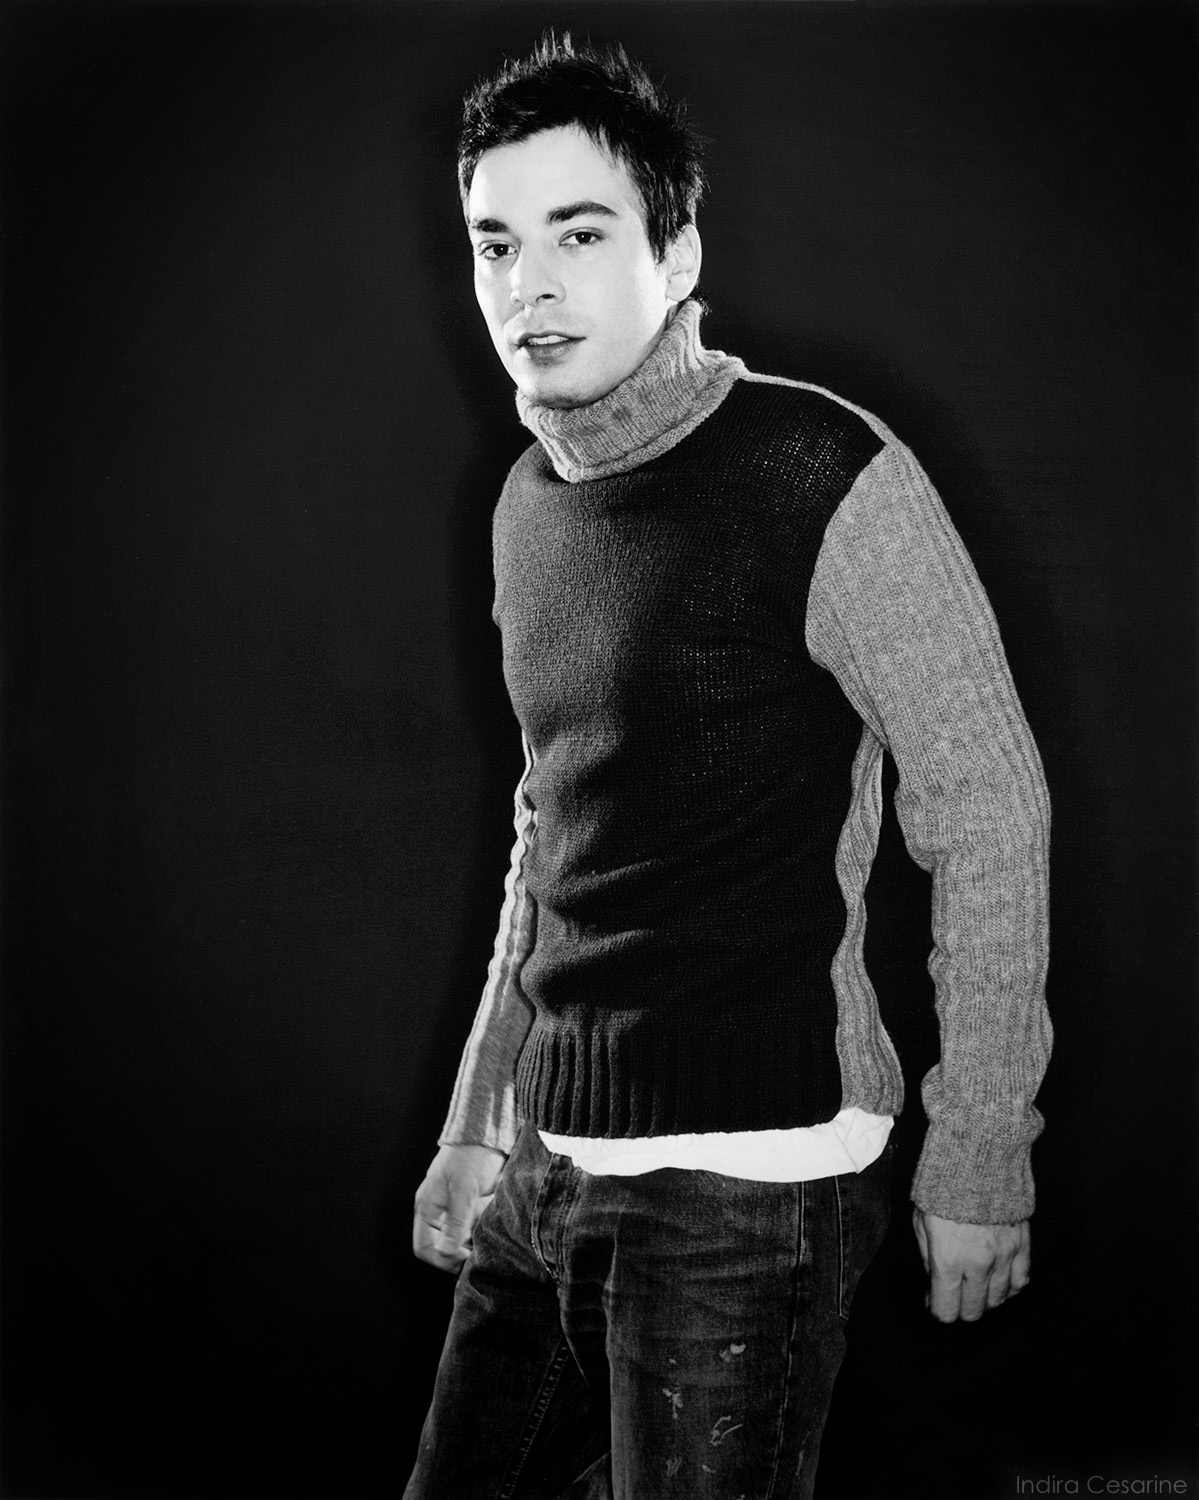 JIMMY-FALLON-Photography-by-Indira-Cesarine-008x.jpg